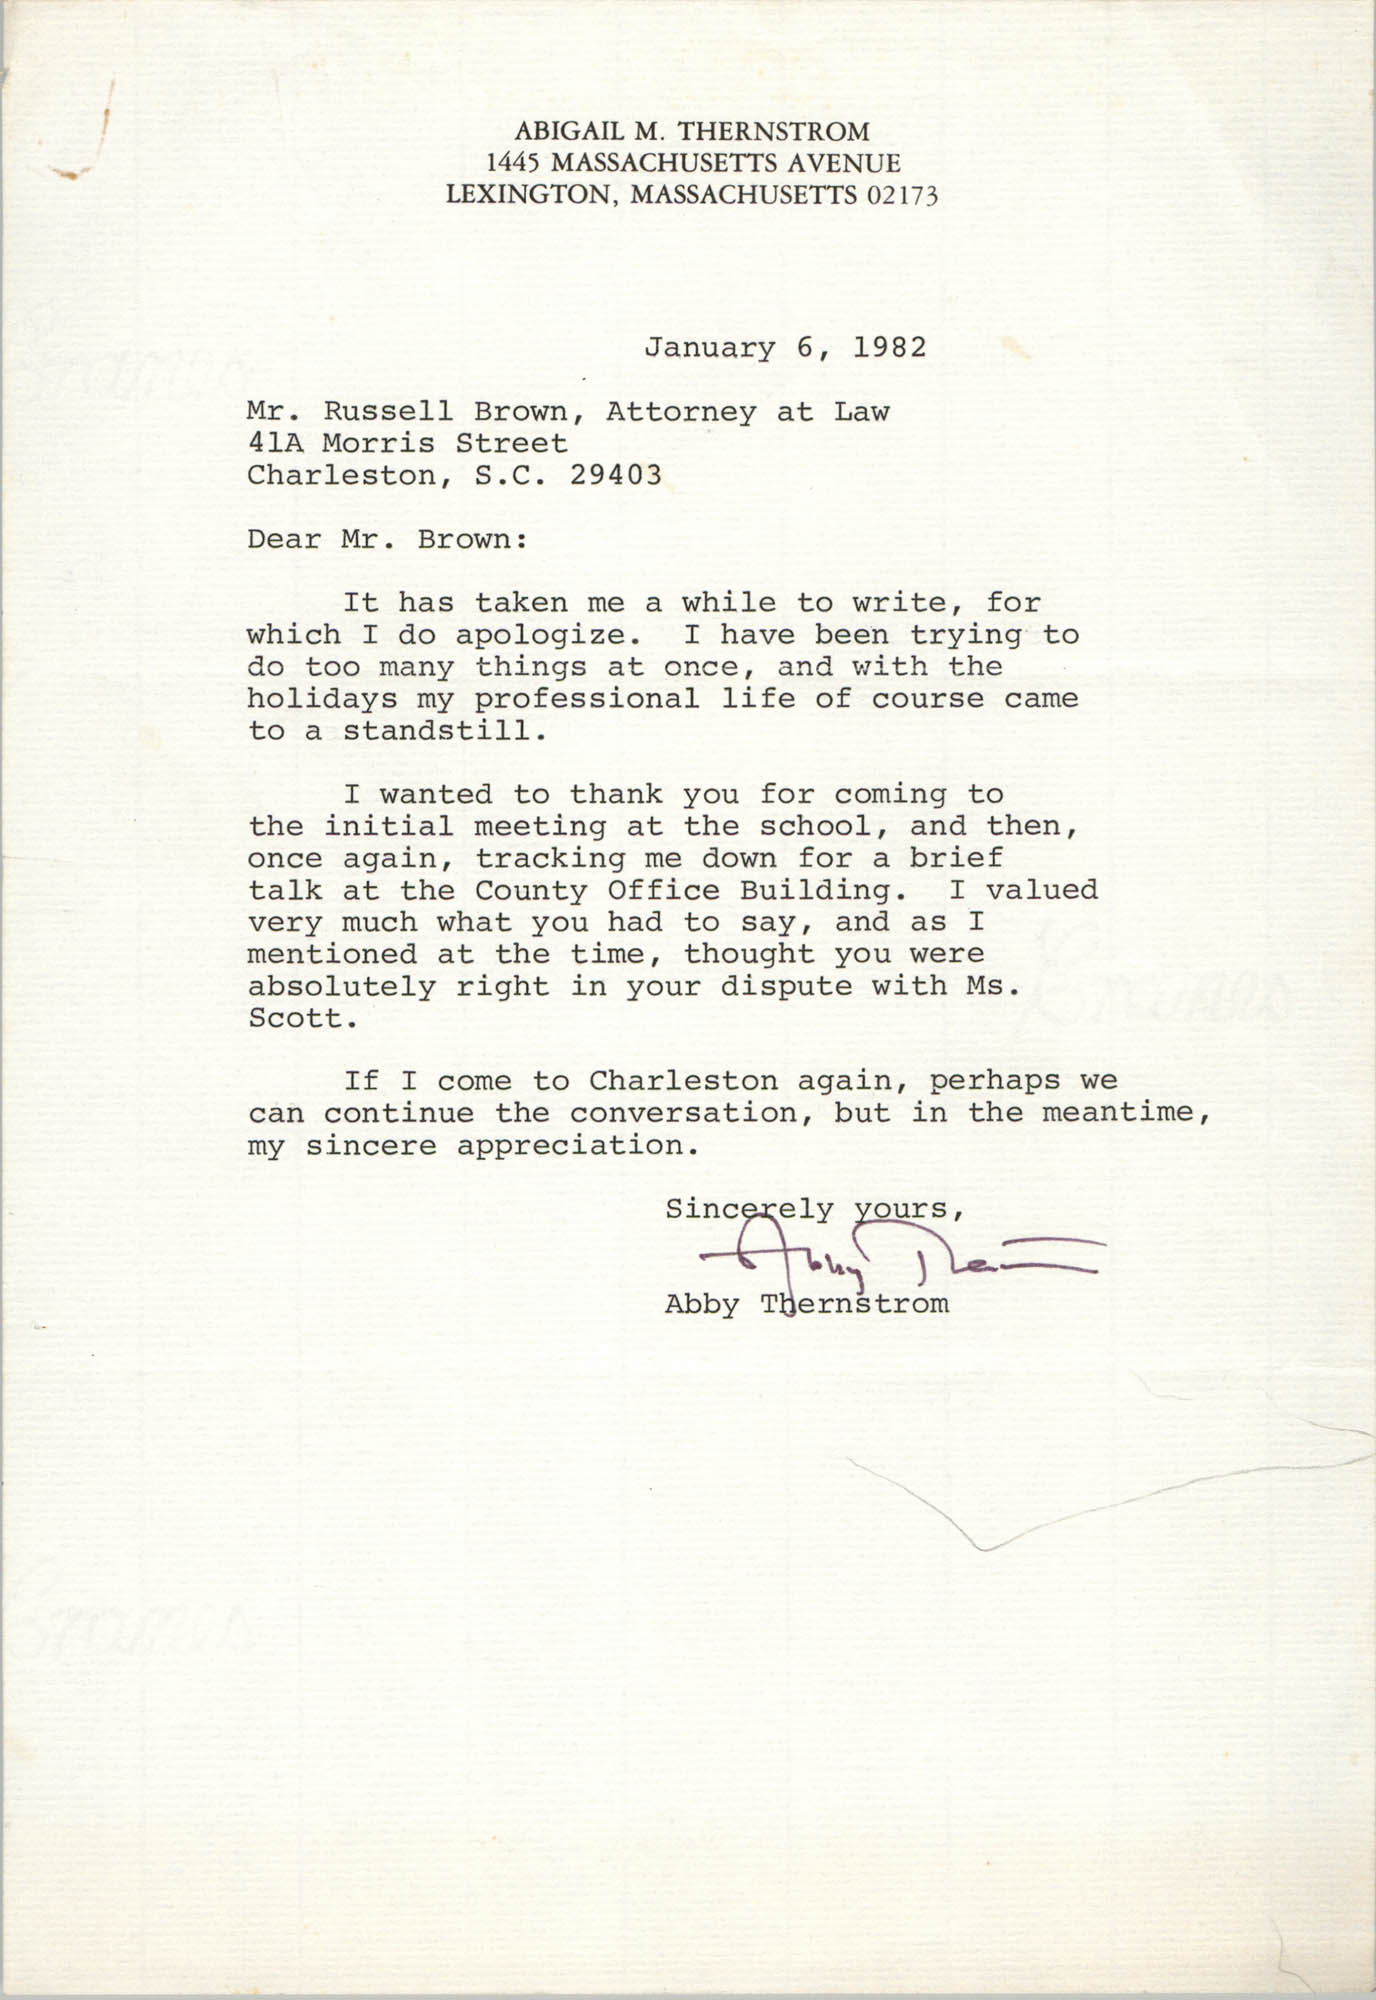 Letter from Abigail M. Thernstrom to Russell Brown, January 6, 1982